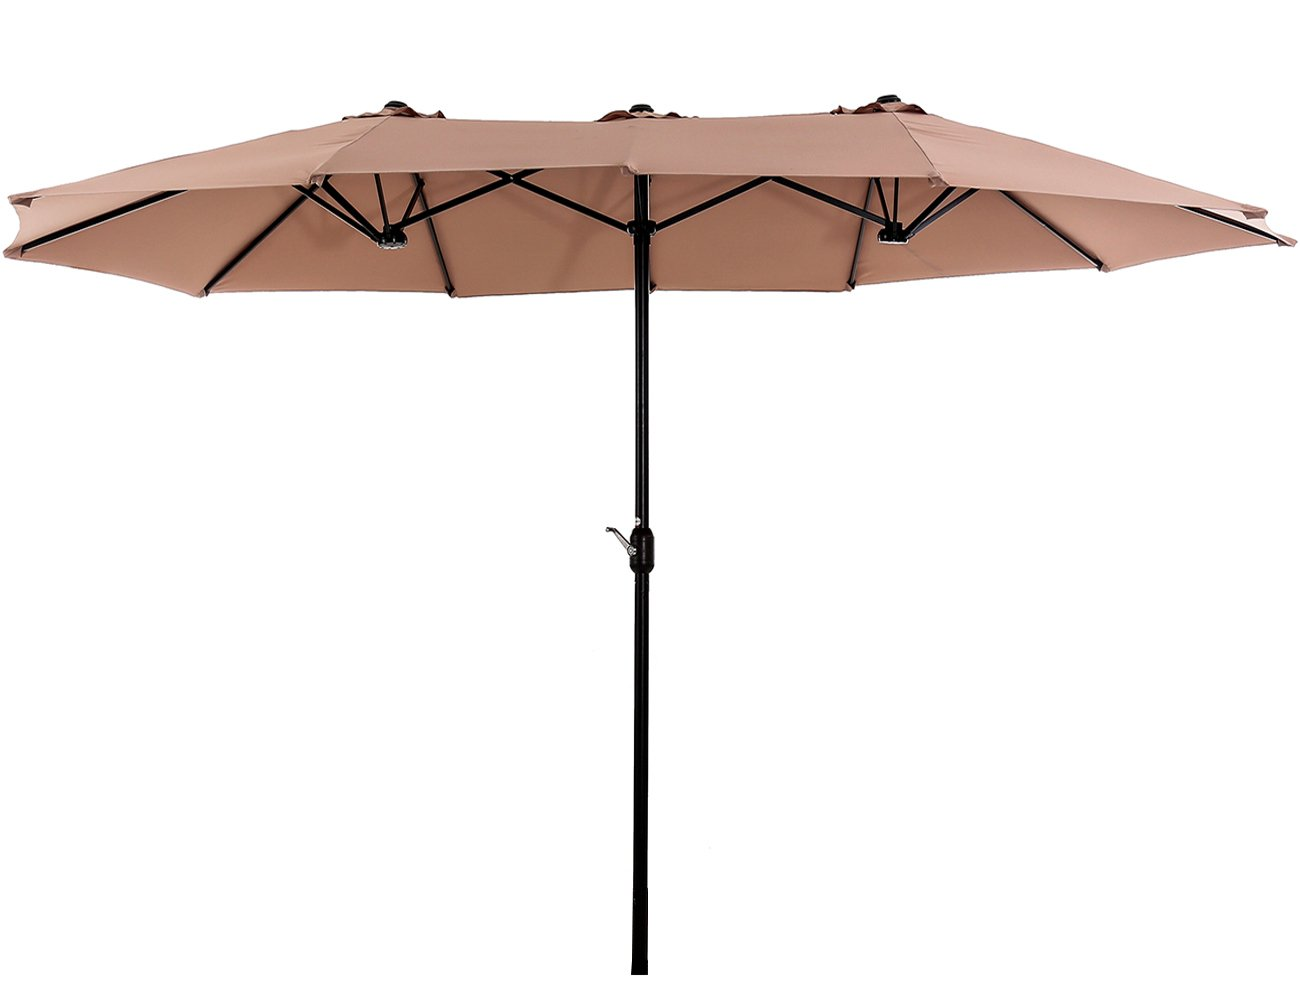 Superjare Outdoor Patio Umbrella with Crank System, Extra-large Double-sided Design, 100% Polyester Fabric - Beige